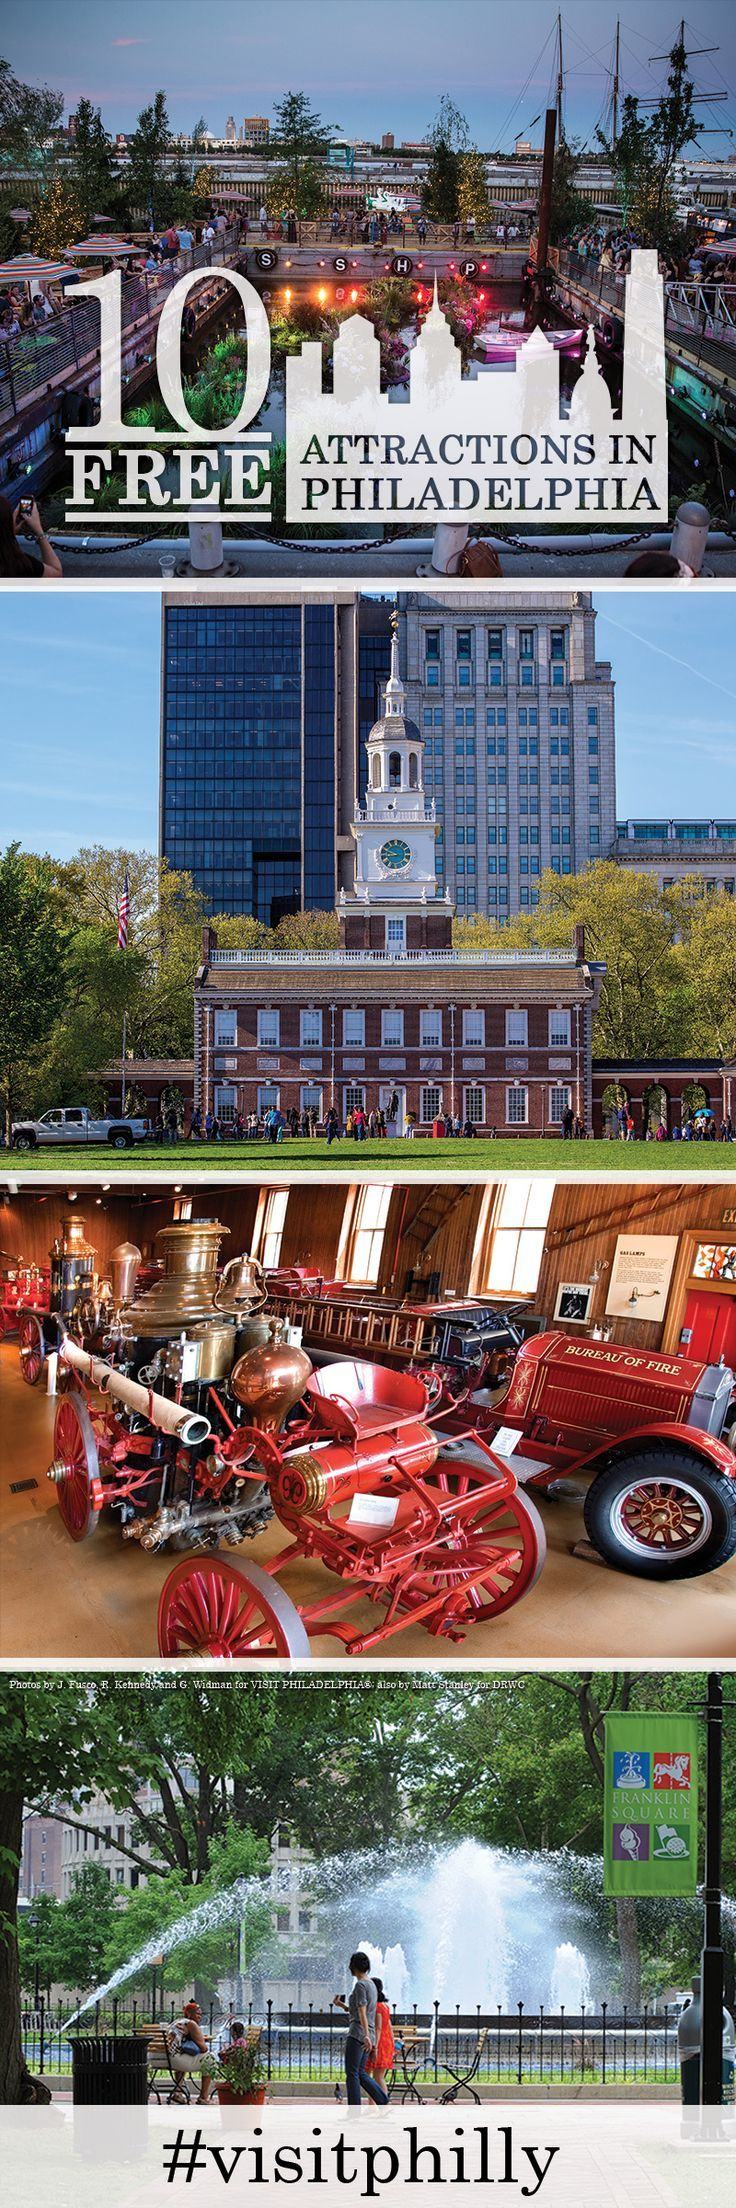 Top Free Attractions in Philadelphia Popular places to